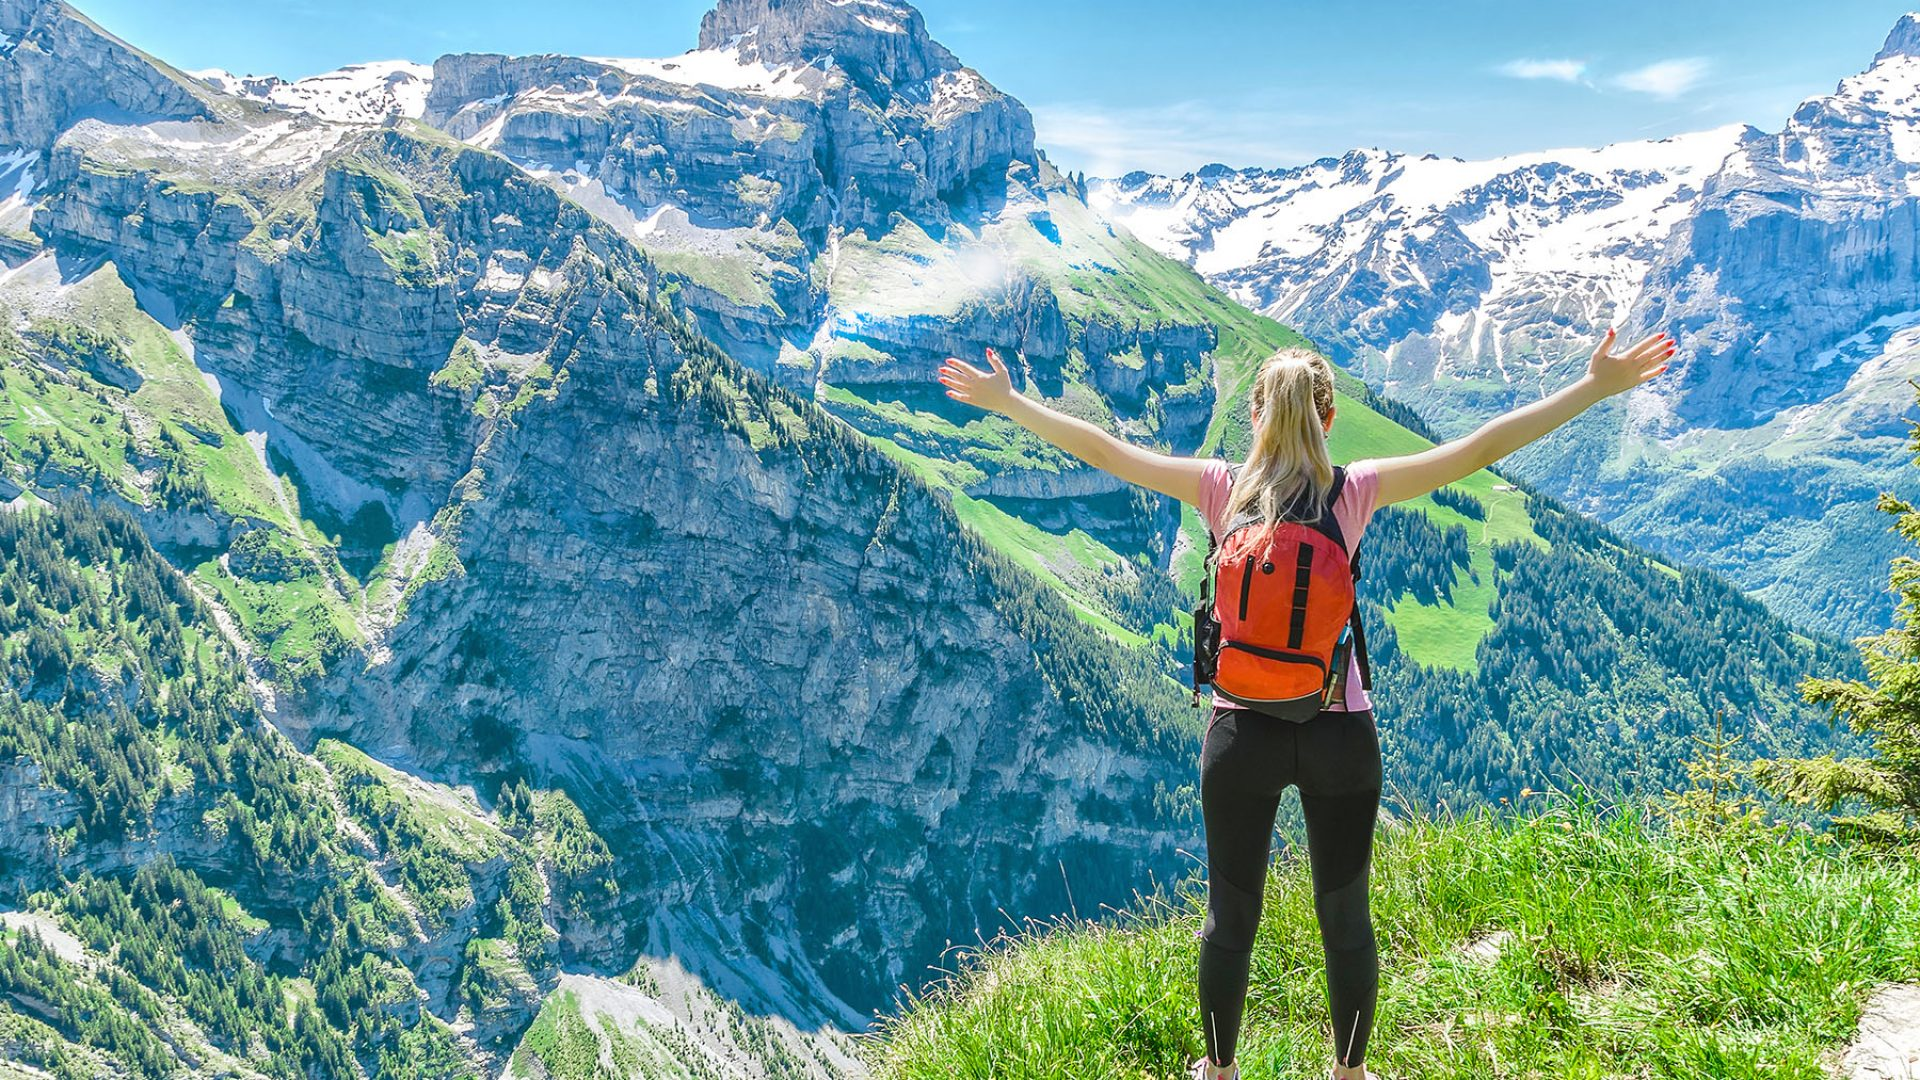 30 surprising facts about Switzerland | Expatica guide to Switzerland